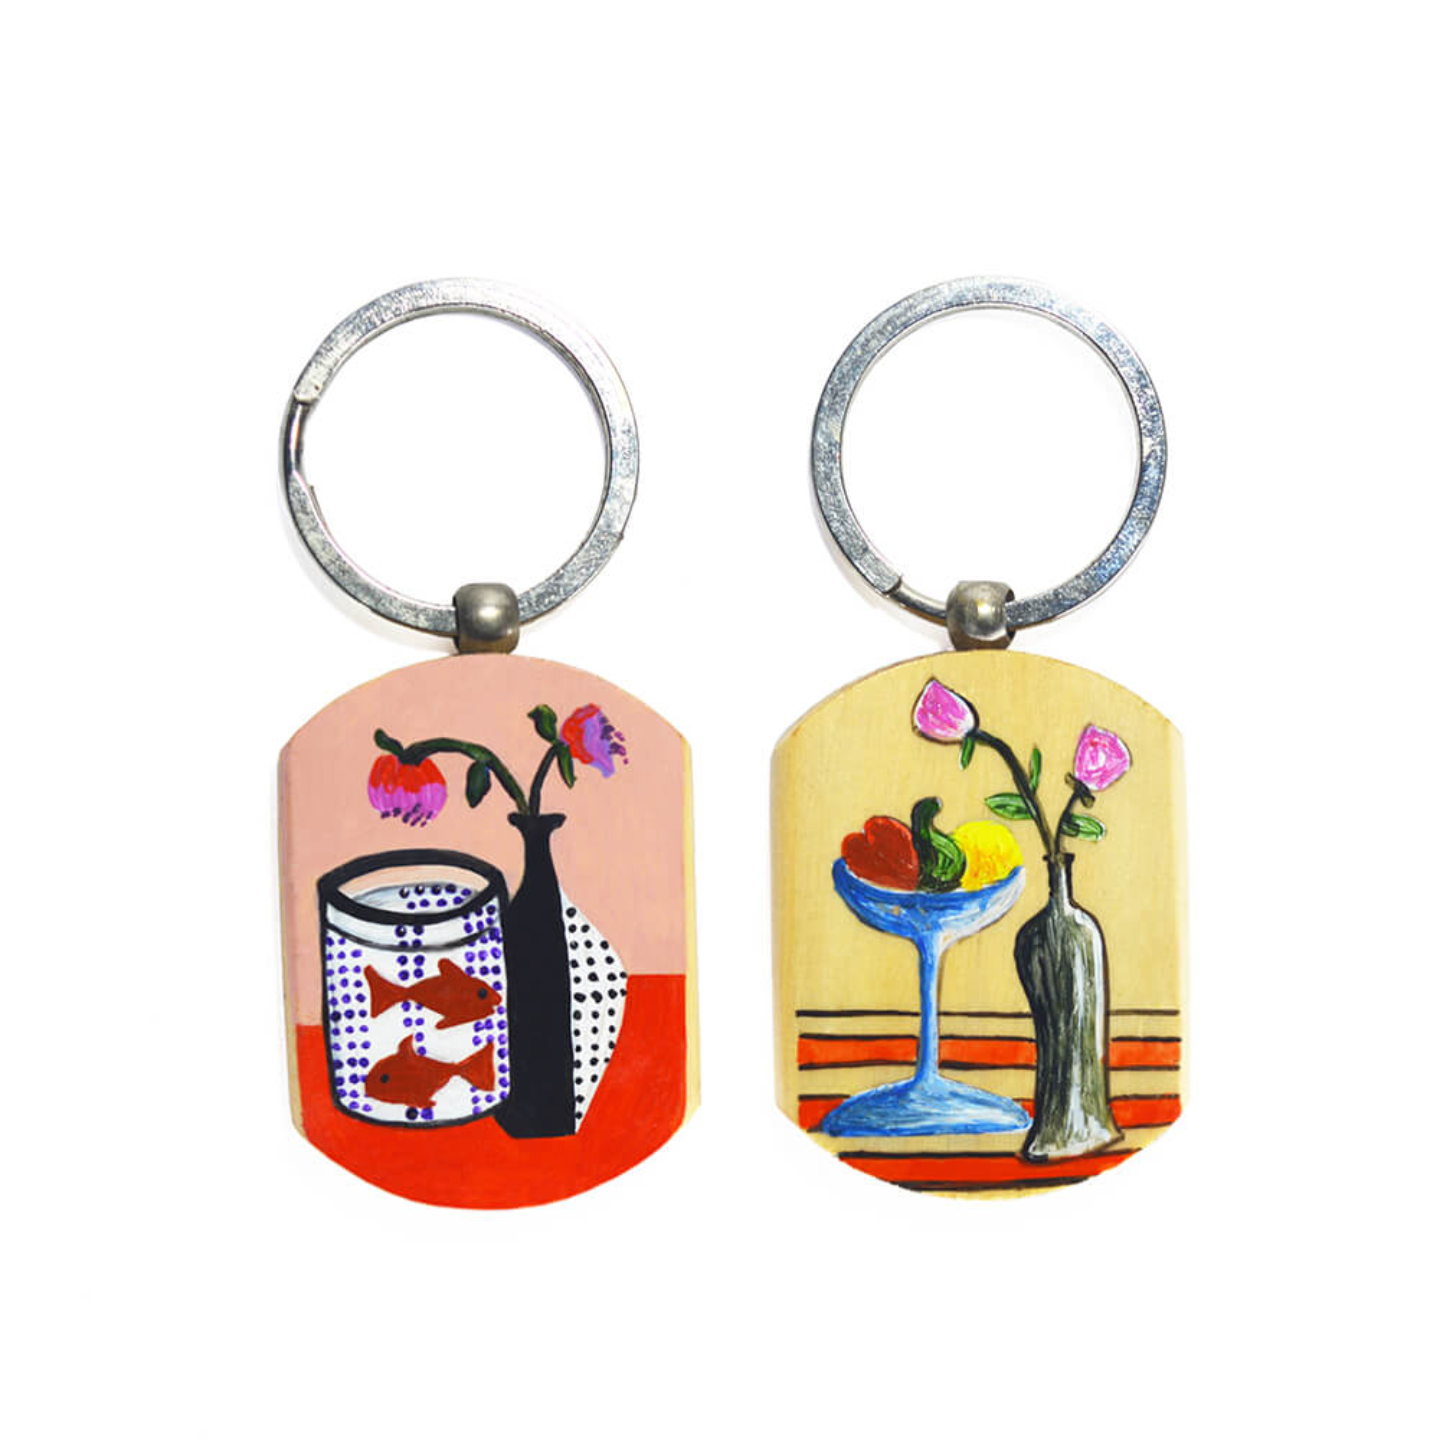 Keychain set with flower pot design work